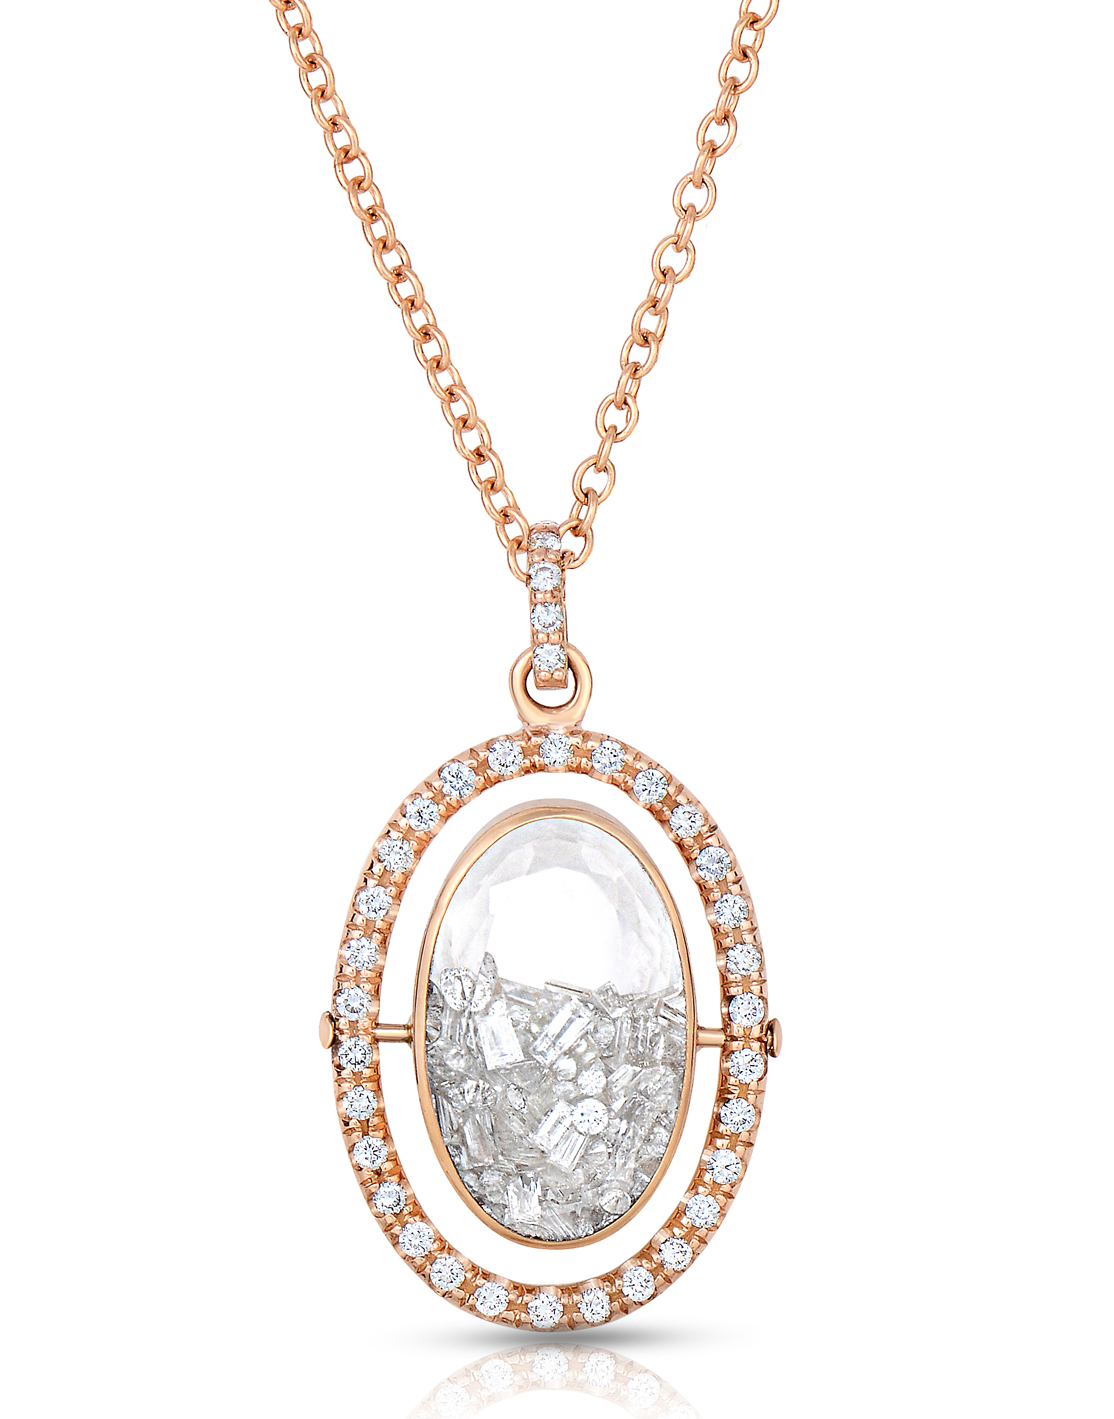 MORITZ GLIK Oval Halo Diamond Shaker Necklace